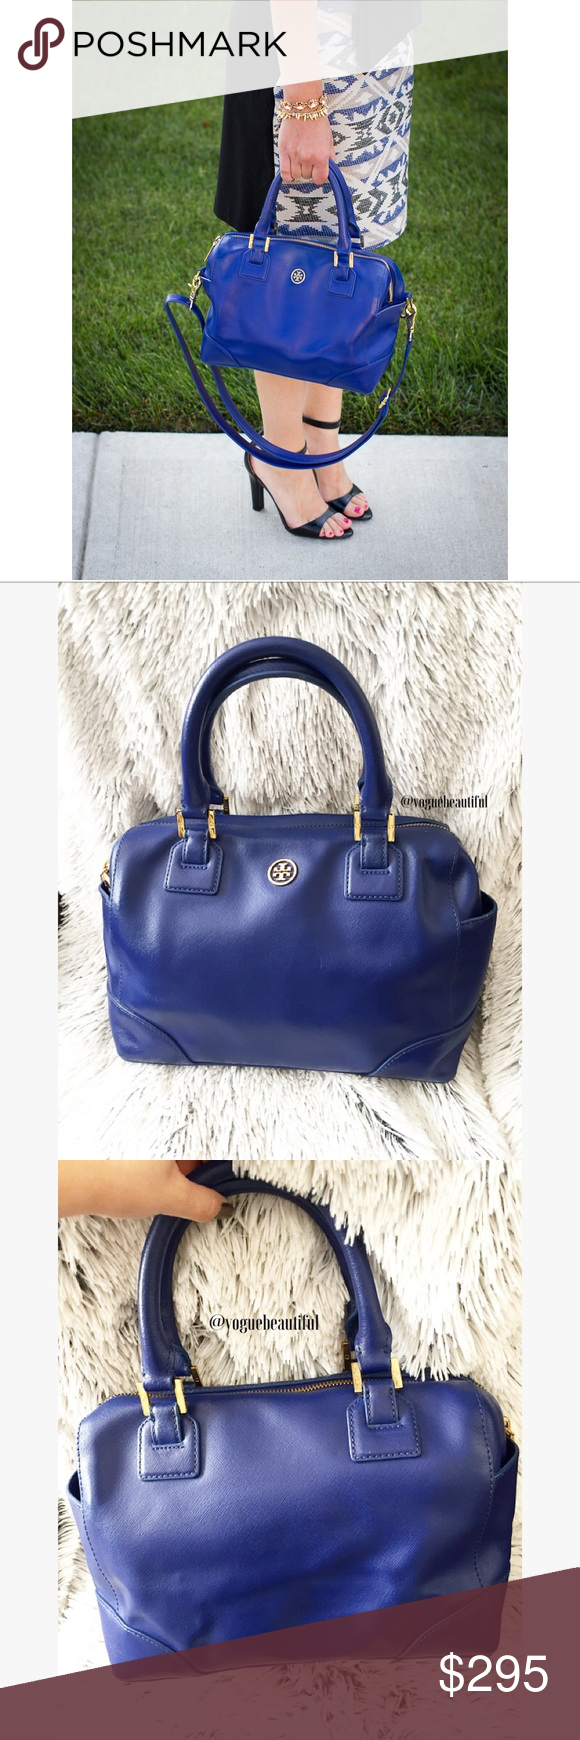 Tory Burch Robinson Middy Cobalt Blue Handbag Gorgeous cobalt blue 100% authentic Tory Burch Robinson Middy handbag • Preloved, has some minor wear to the corners {see additional listing for more photos} • does not come with crossbody strap or dustbag • DIMENSIONS; 12 inches across x 7.5 inches height x 4.9 inch strap drop • size comparison in first photo {credit: mixmatch.com} • Gold hardware • 2 exterior pockets • 3 interior pockets, including 1 zippered pocket • NO TRADES‼️ • color may…